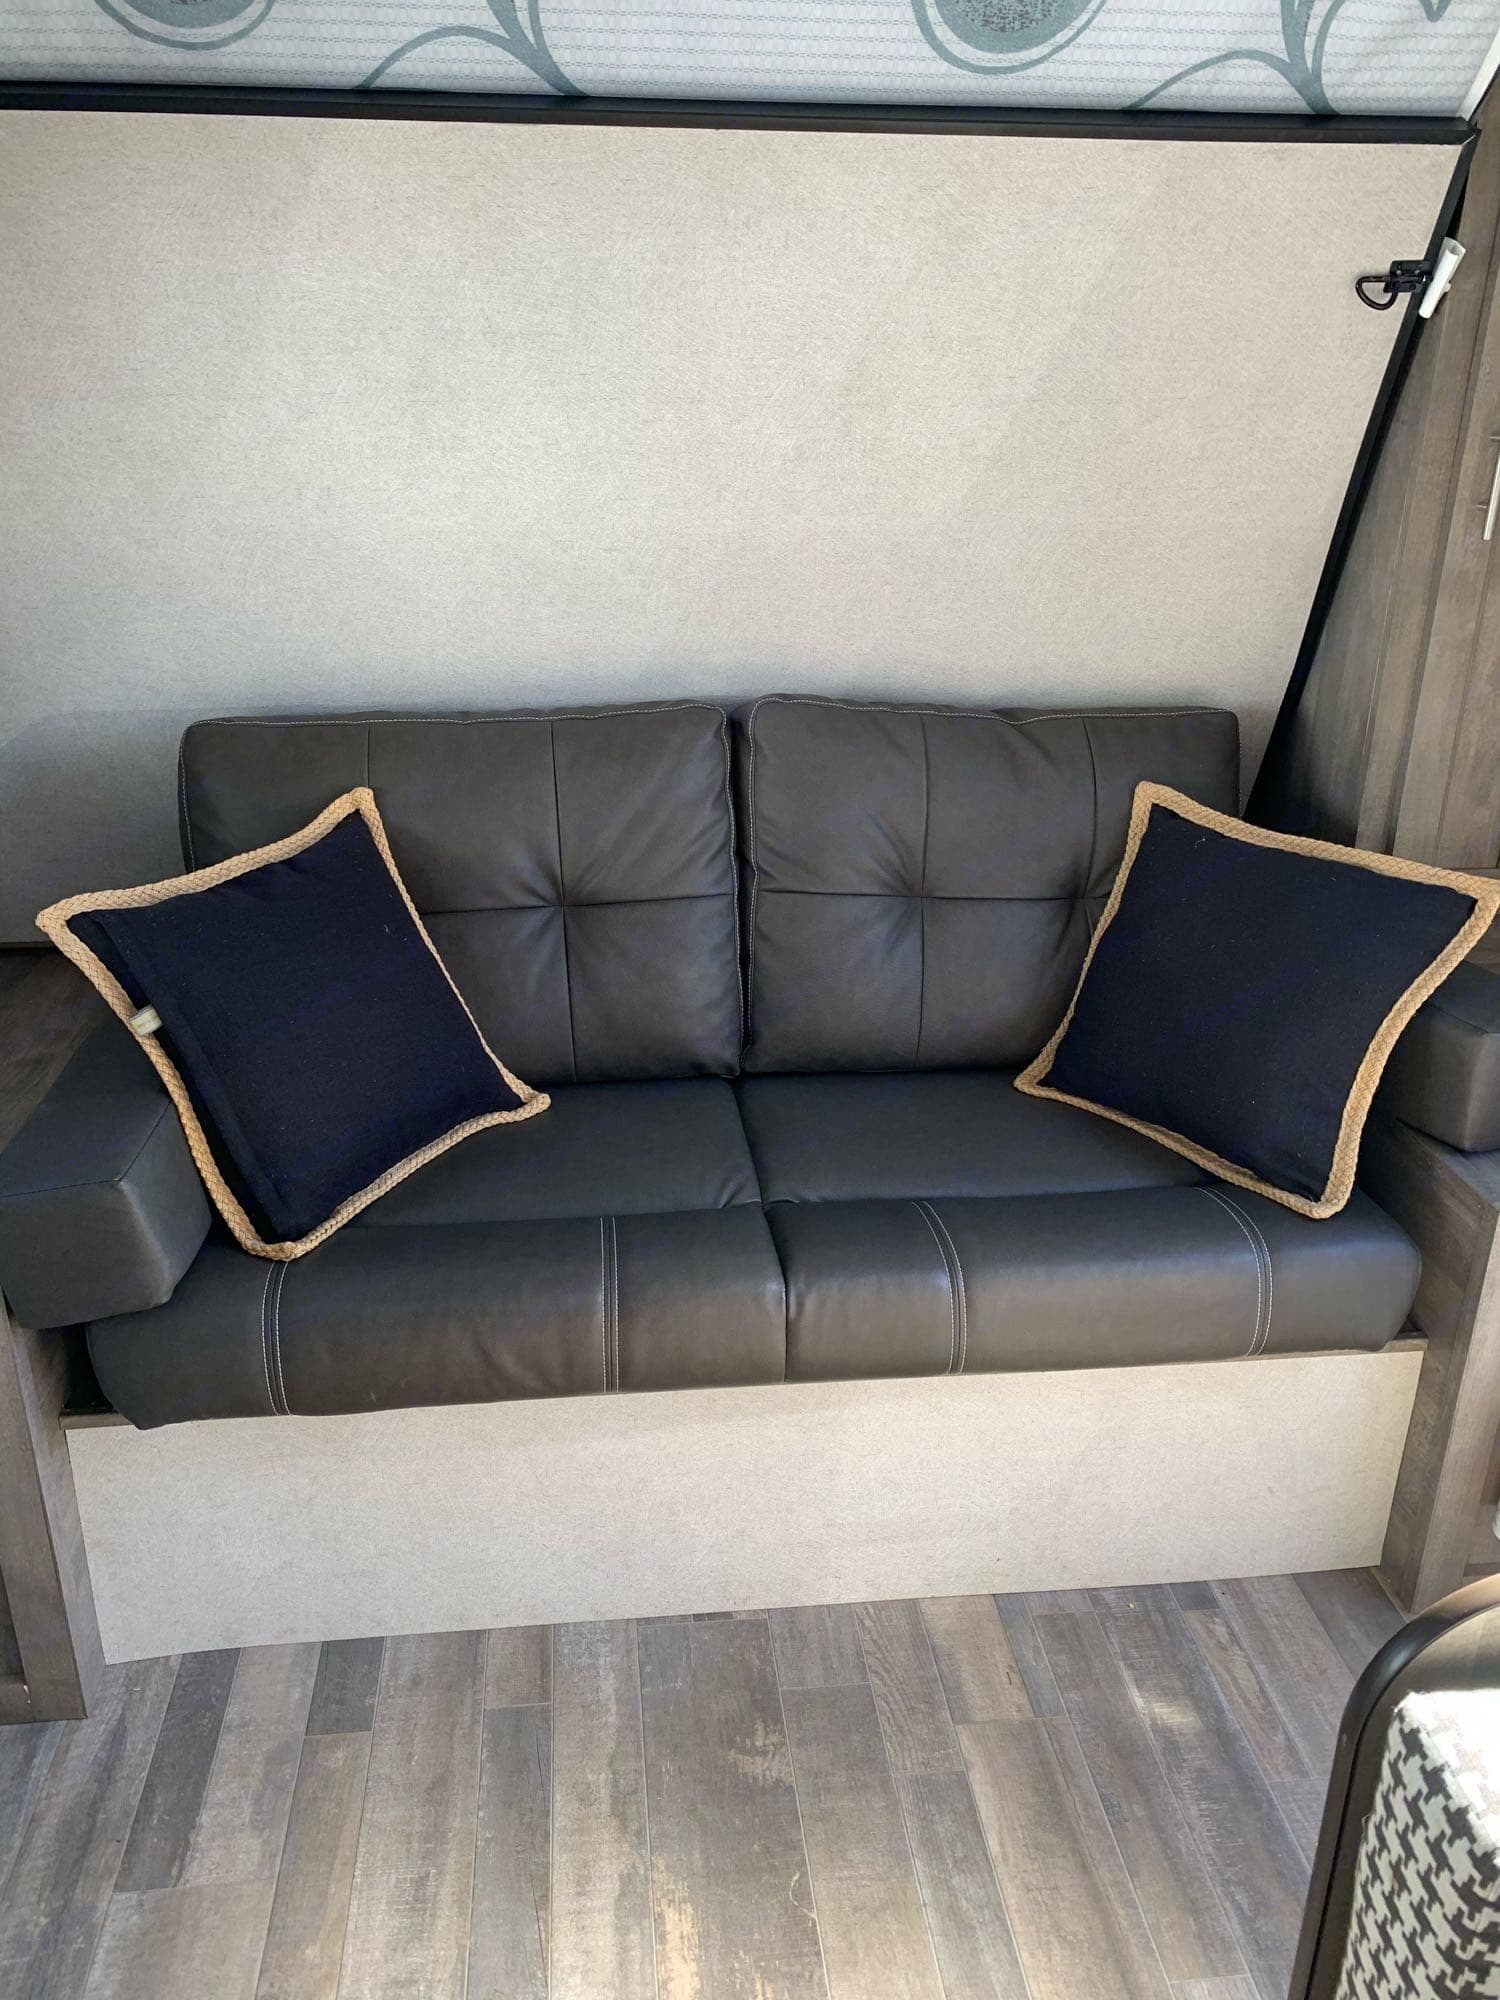 Couch with Murphy bed. Forest River Vibe 2020